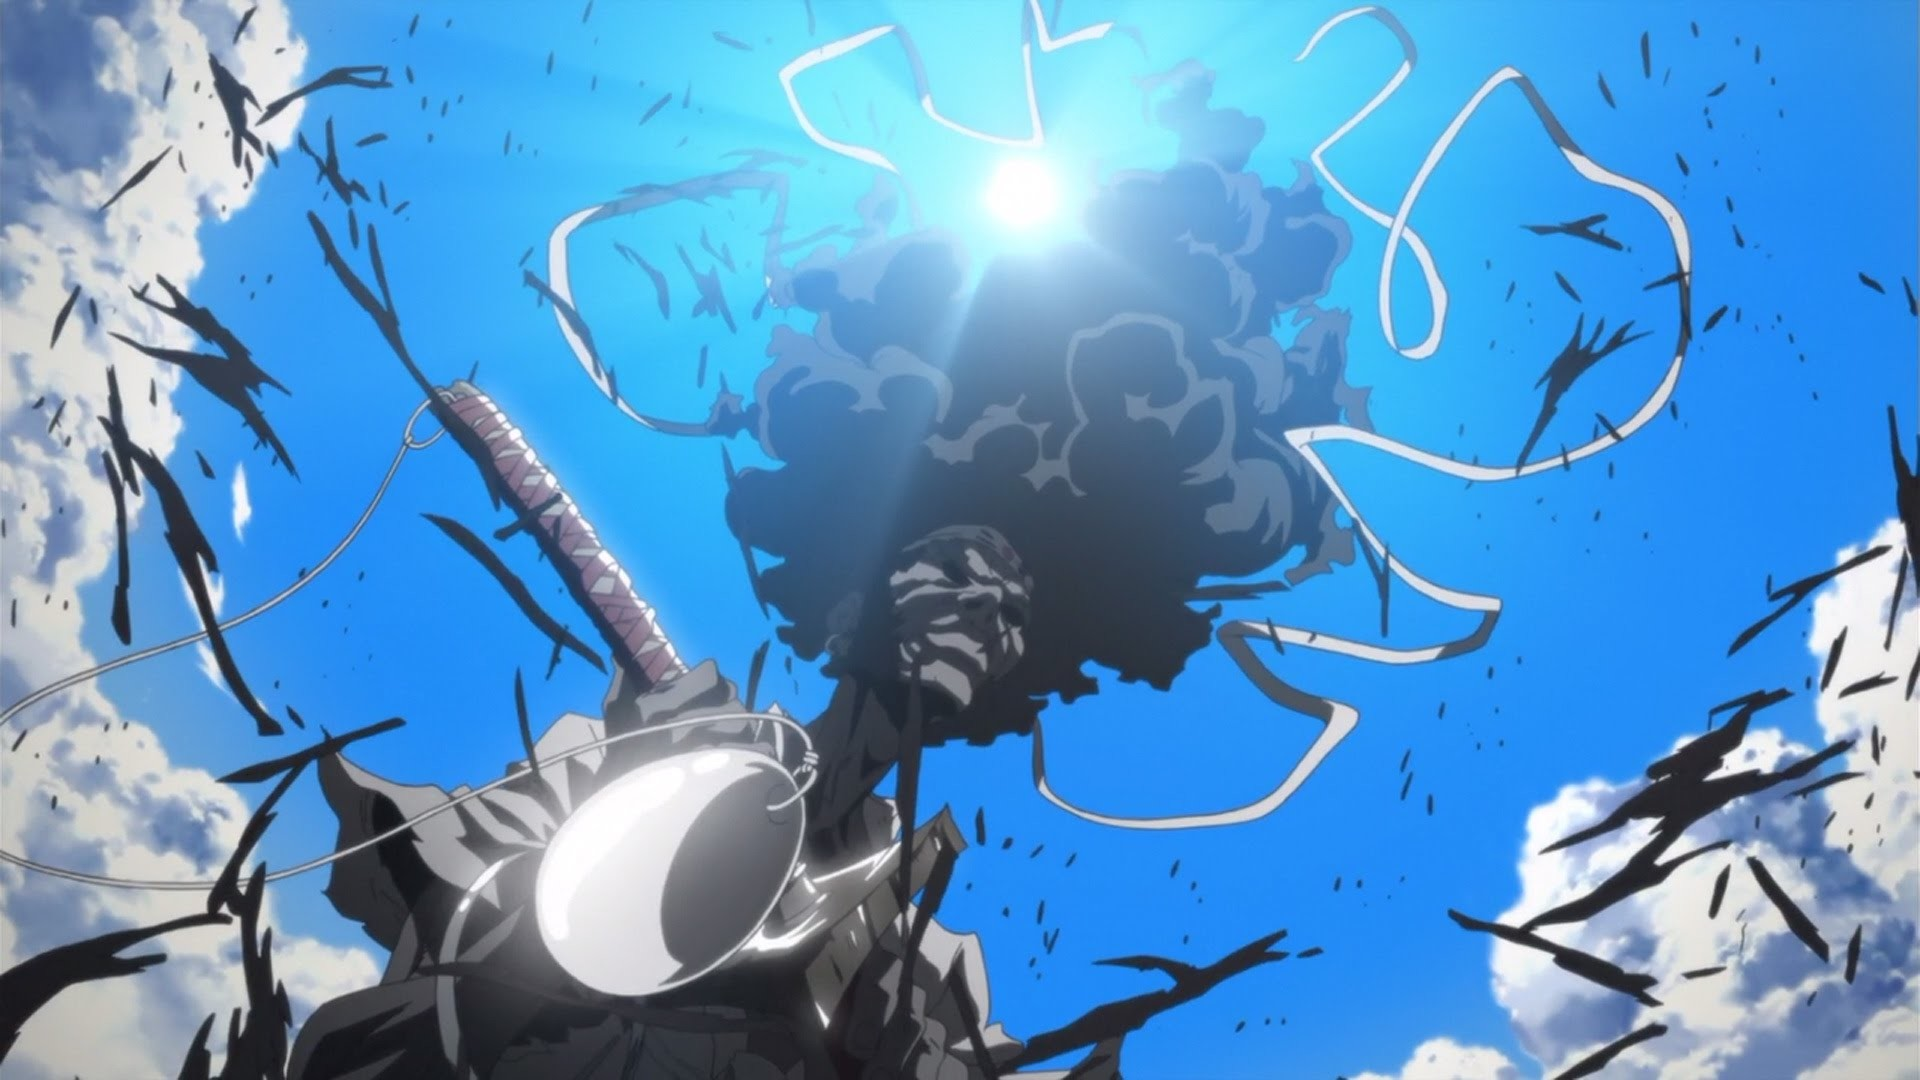 1920x1080 Afro Samurai Wallpapers HDQ Images Collection For Japanese Warrior